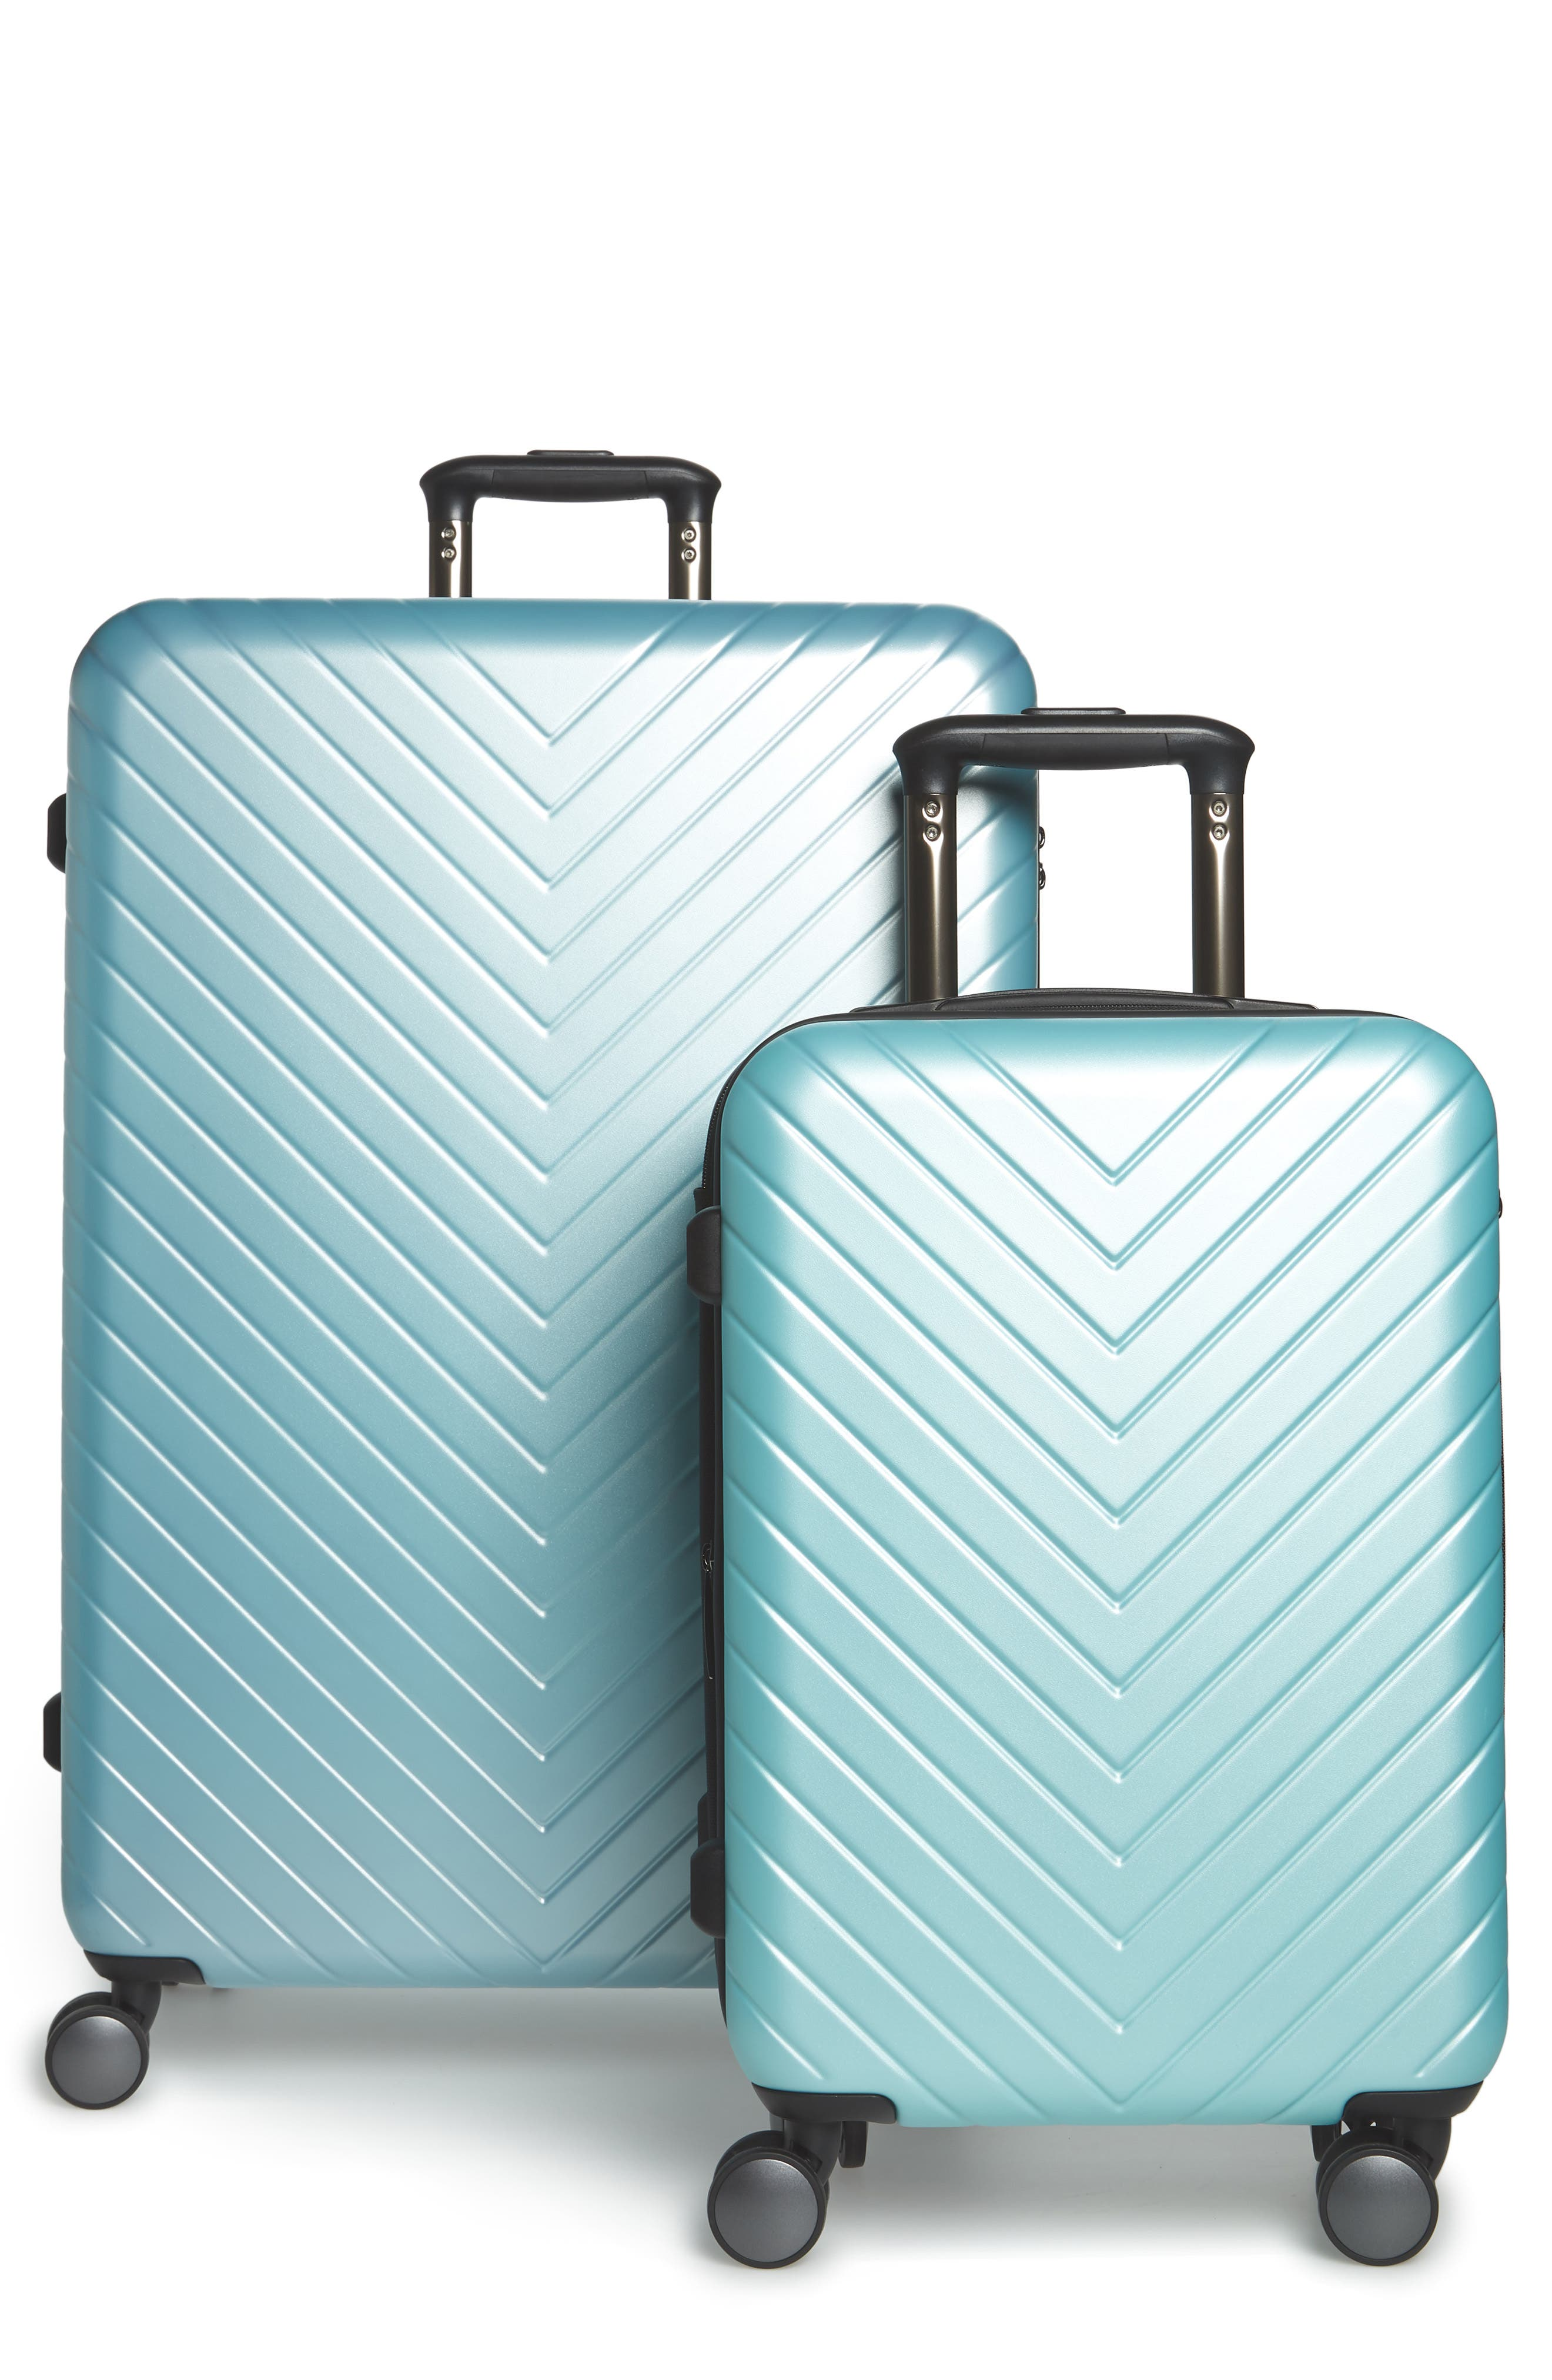 Chevron 29-Inch & 20-Inch Spinner Luggage Set,                             Main thumbnail 1, color,                             Teal Surf